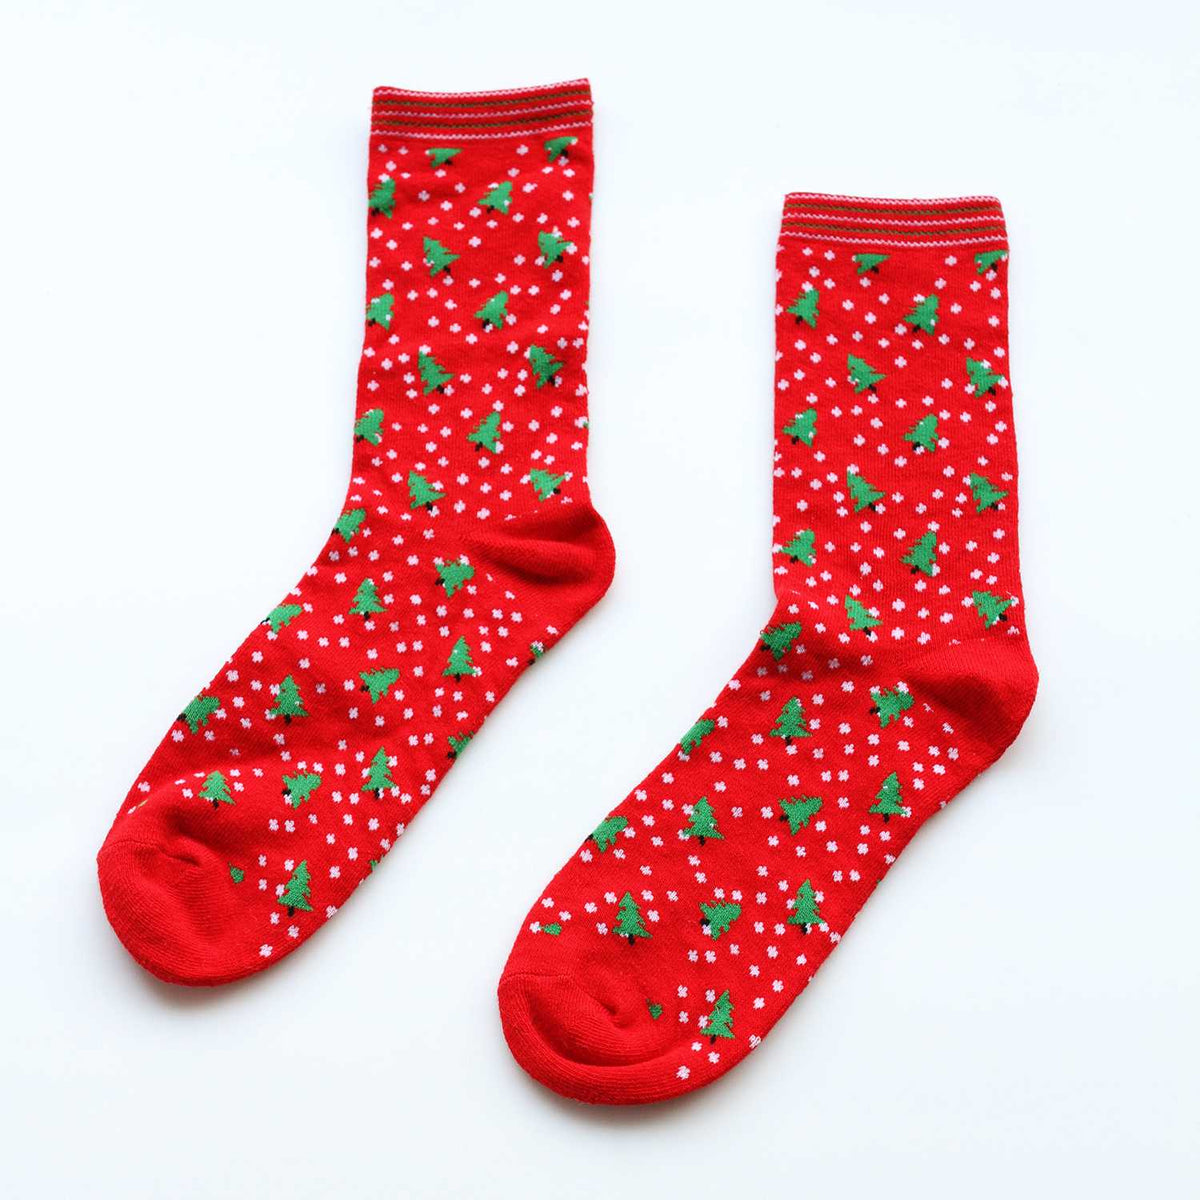 Special Gift -Long Cotton Socks Set - worthtryit.com